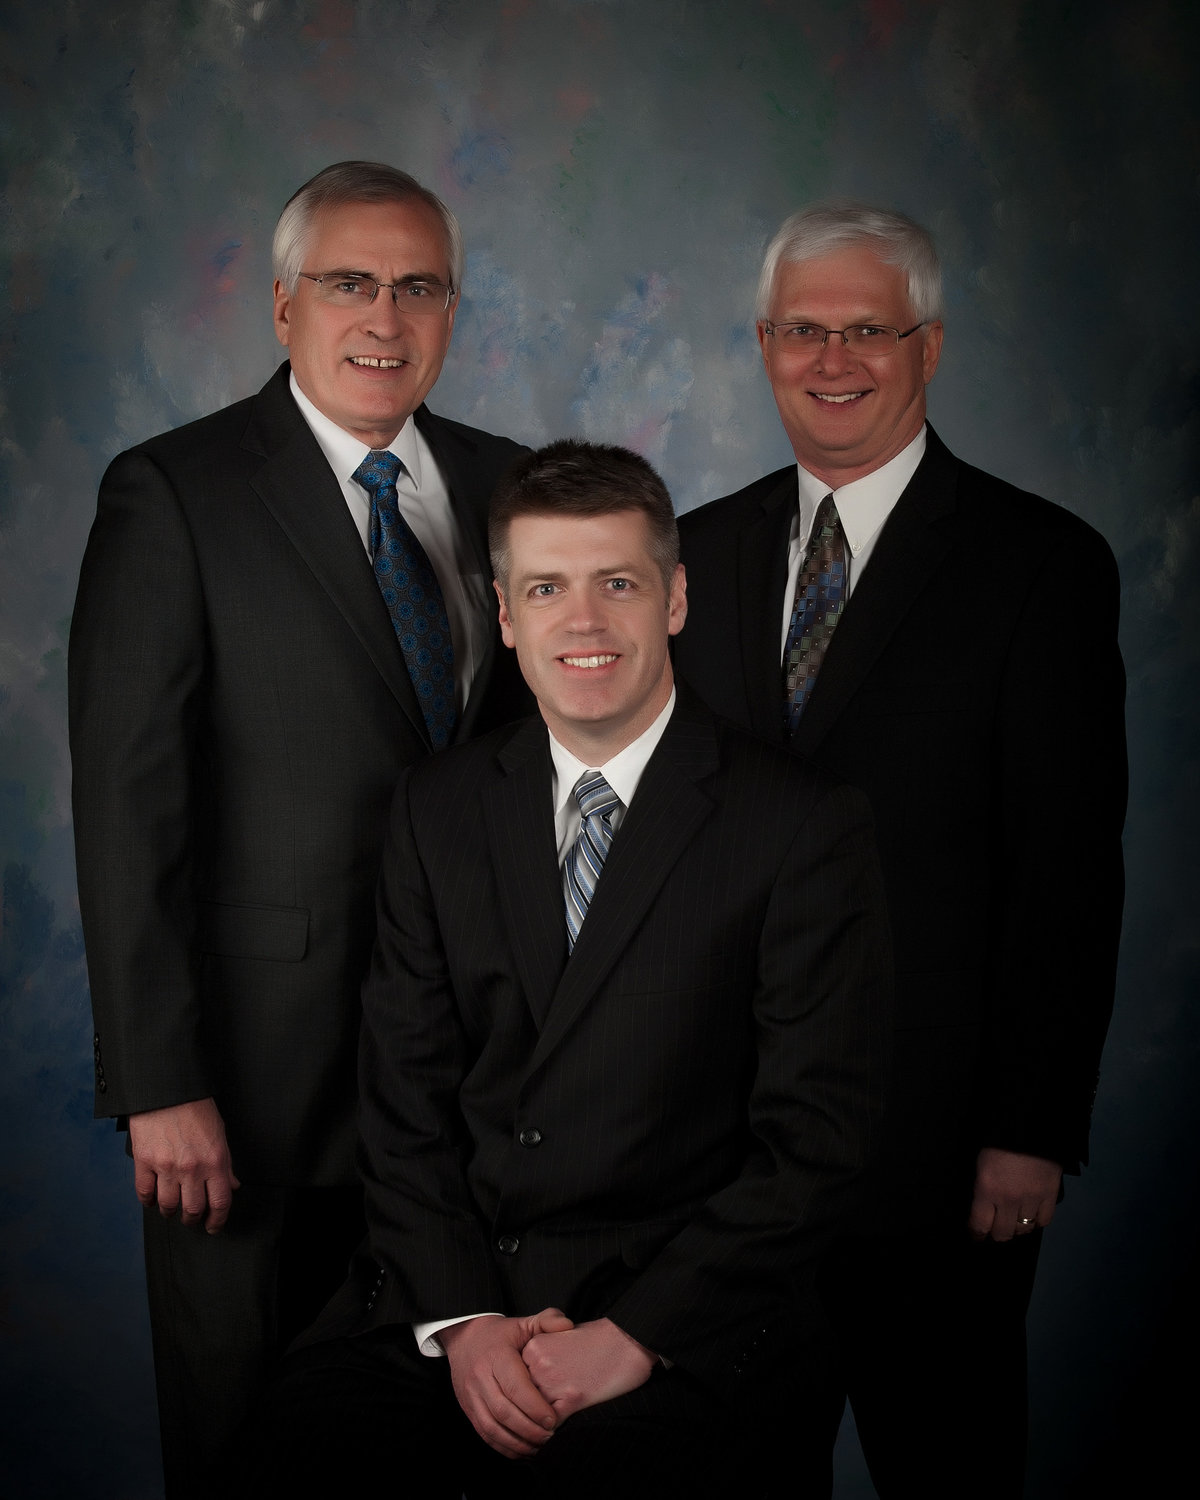 attorneys in group studio picture wearing suits